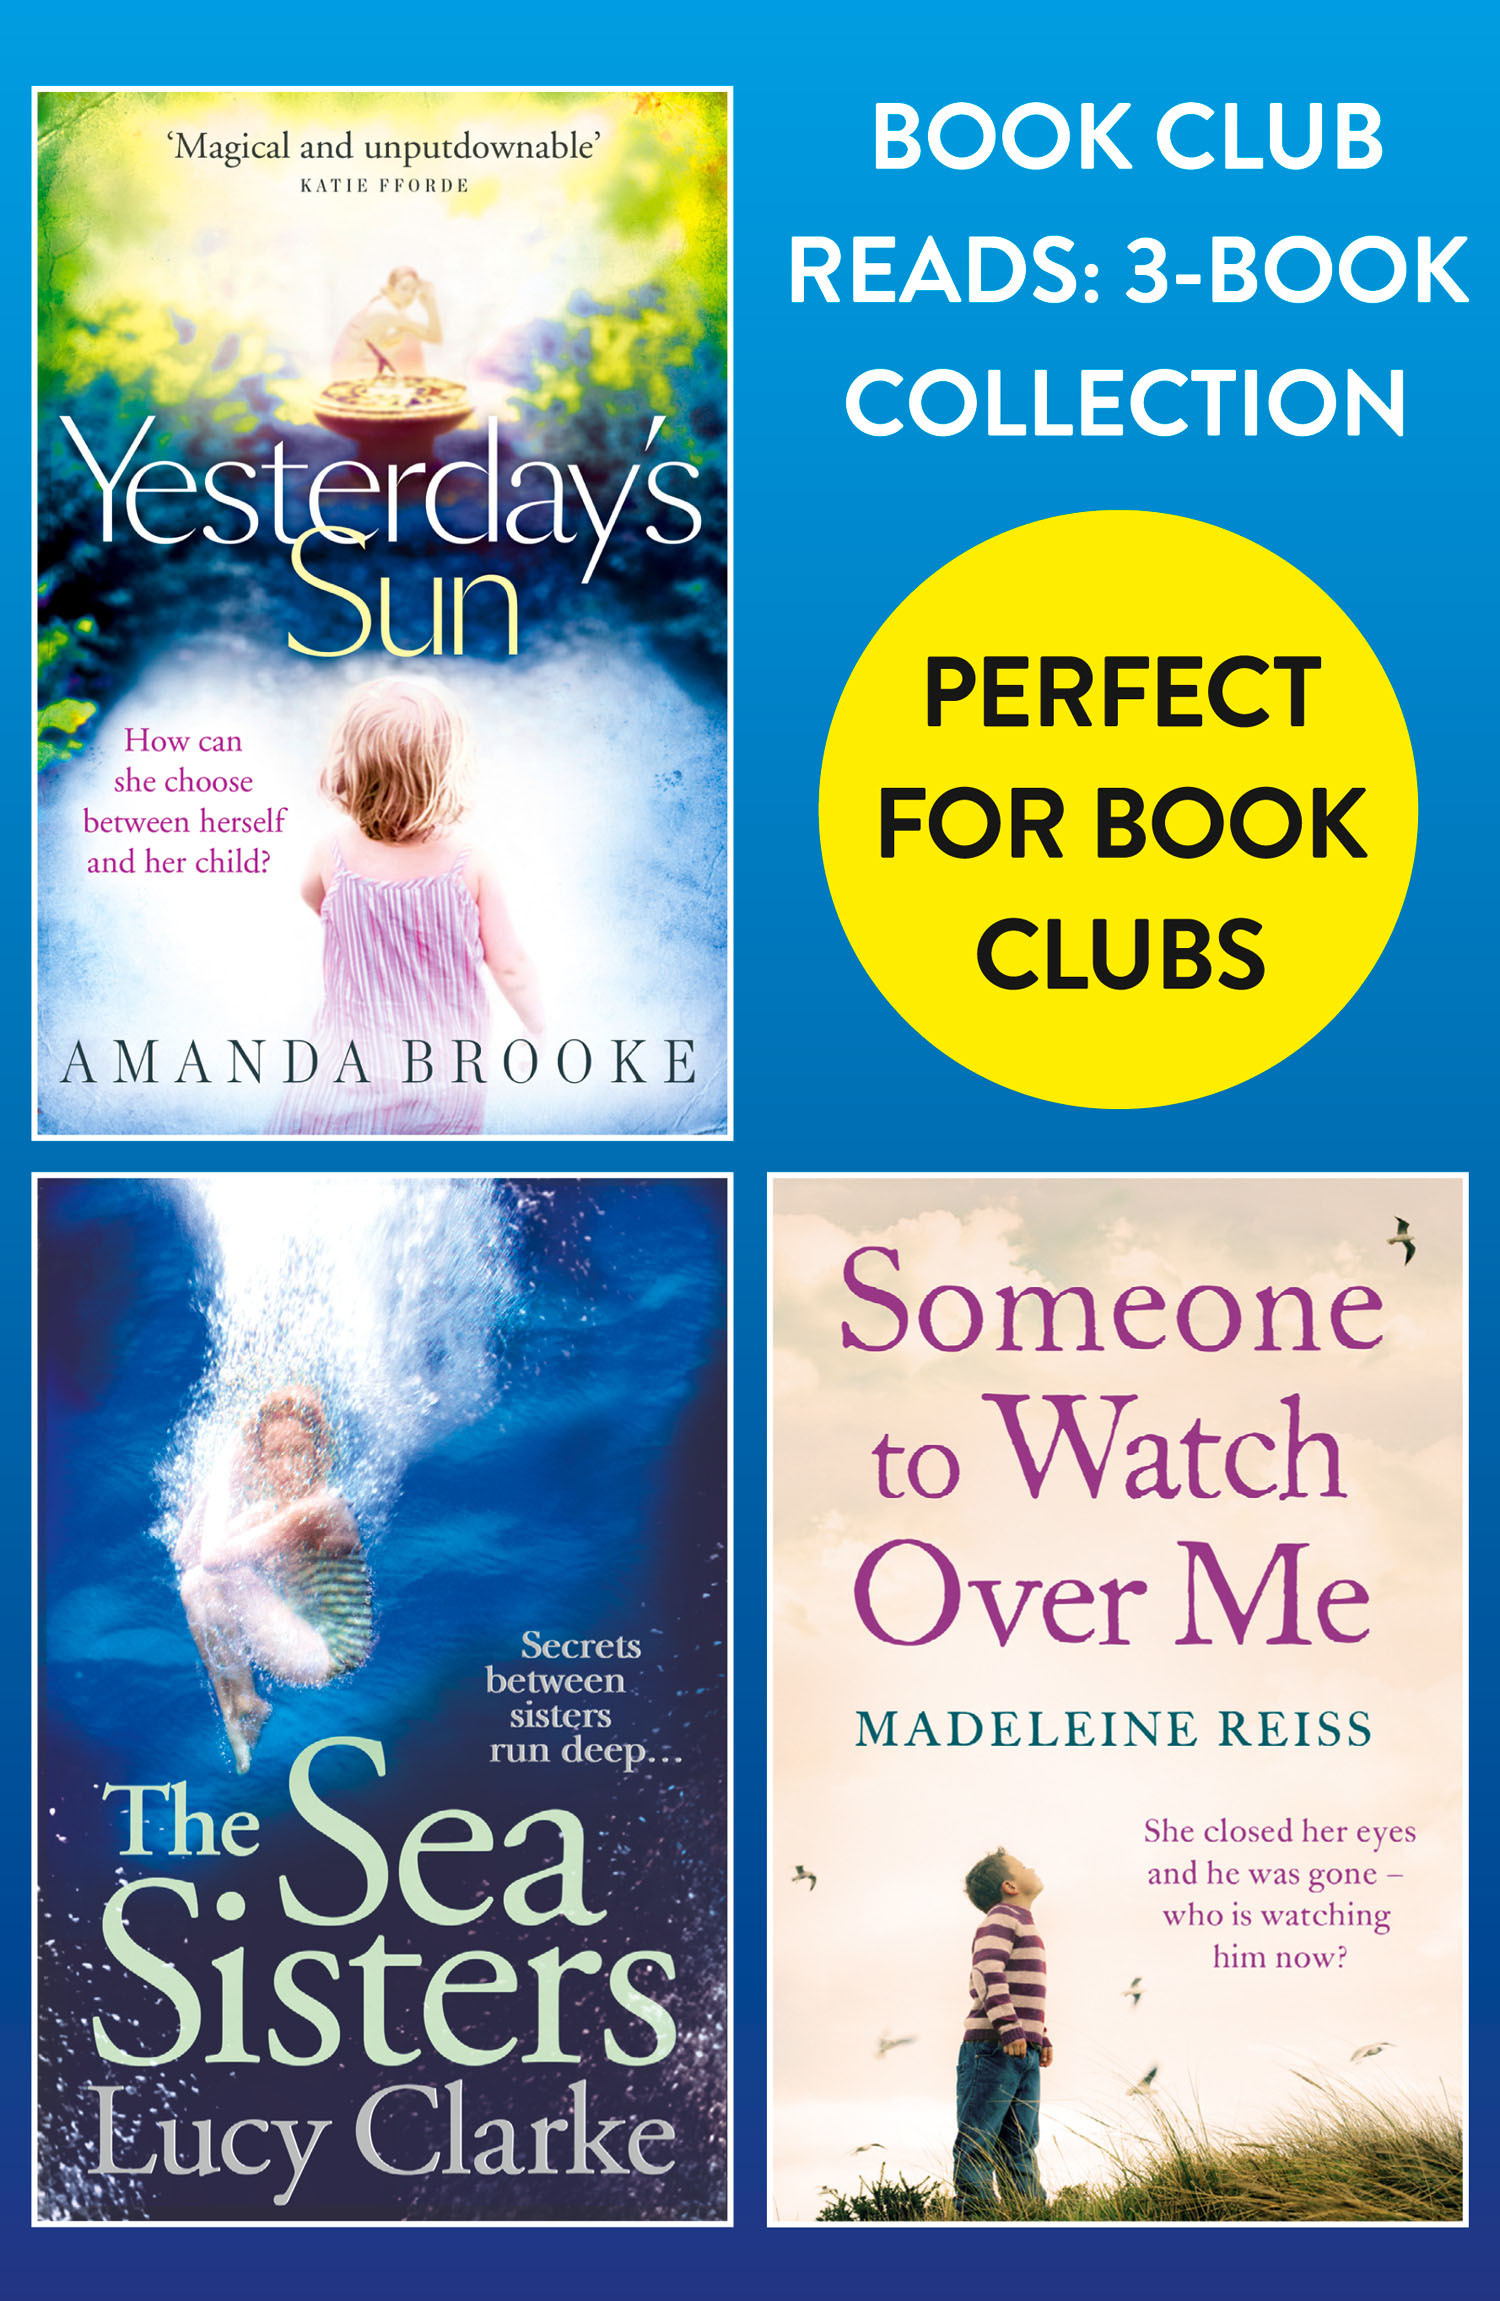 Book Club Reads: 3-Book Collection